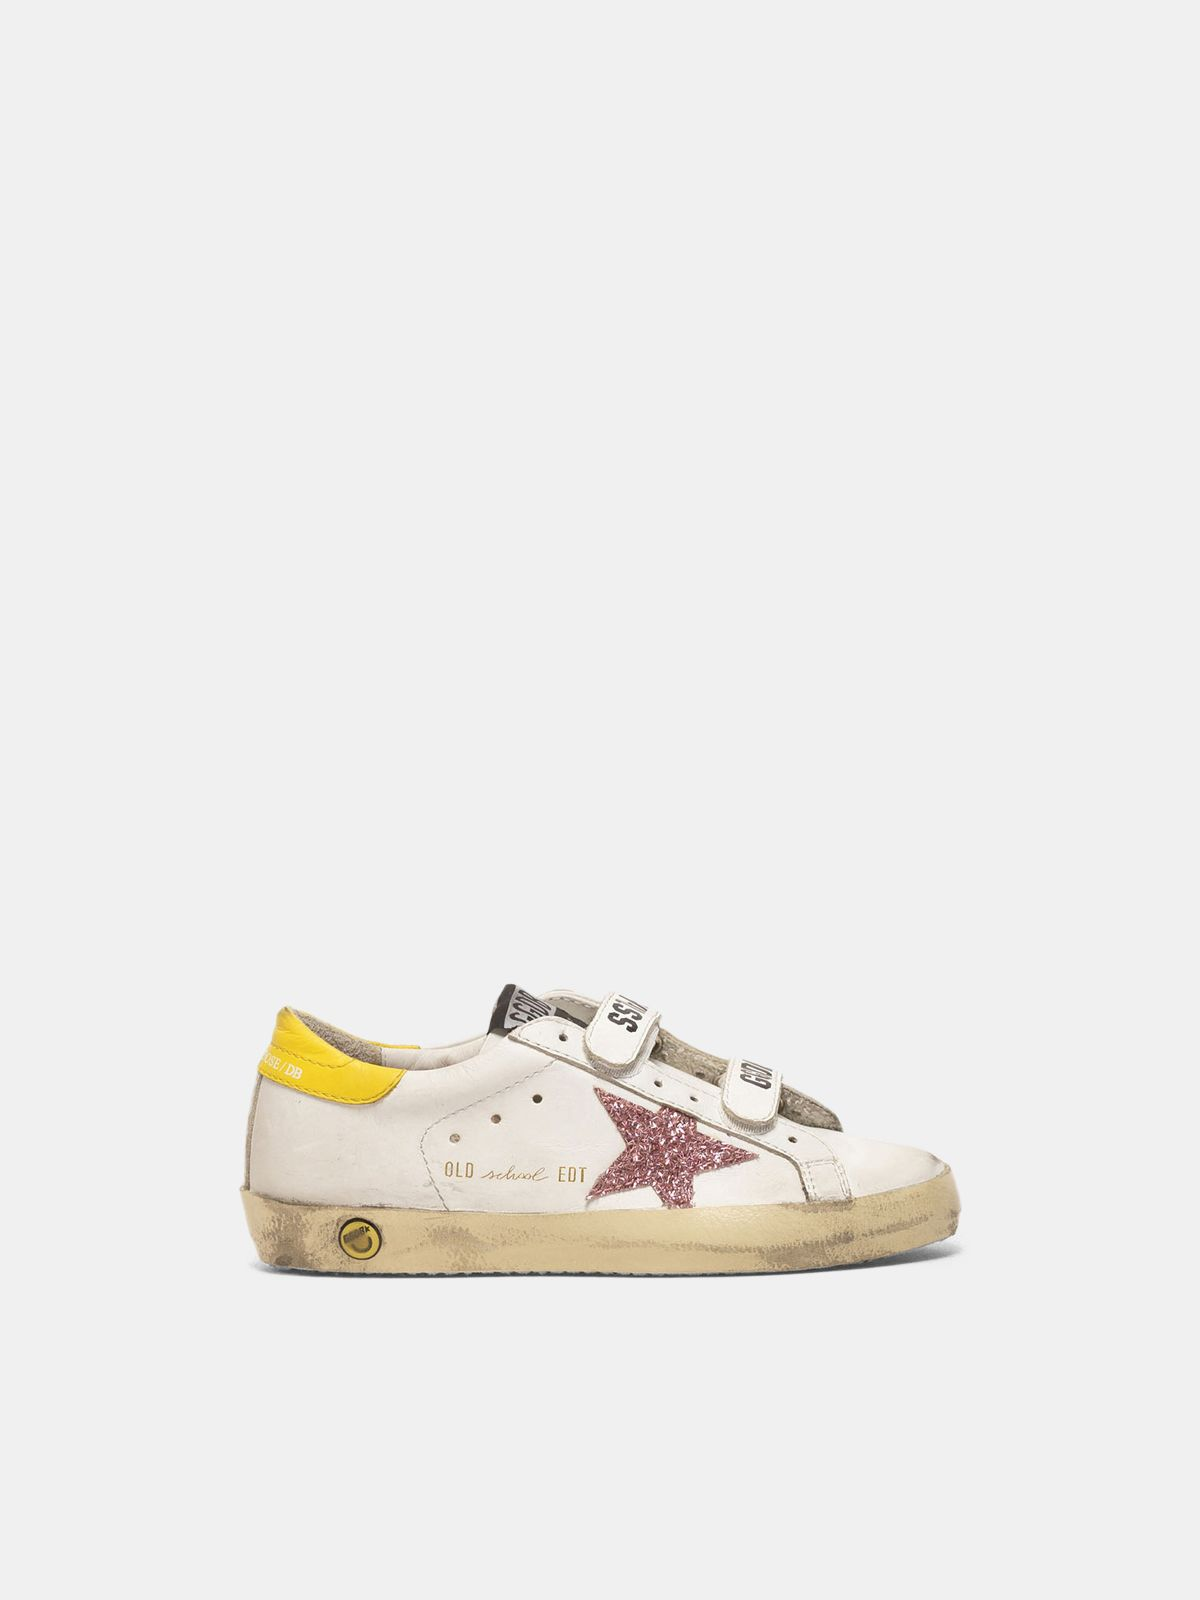 Golden Goose - Old School sneakers with glitter star and yellow heel tab in